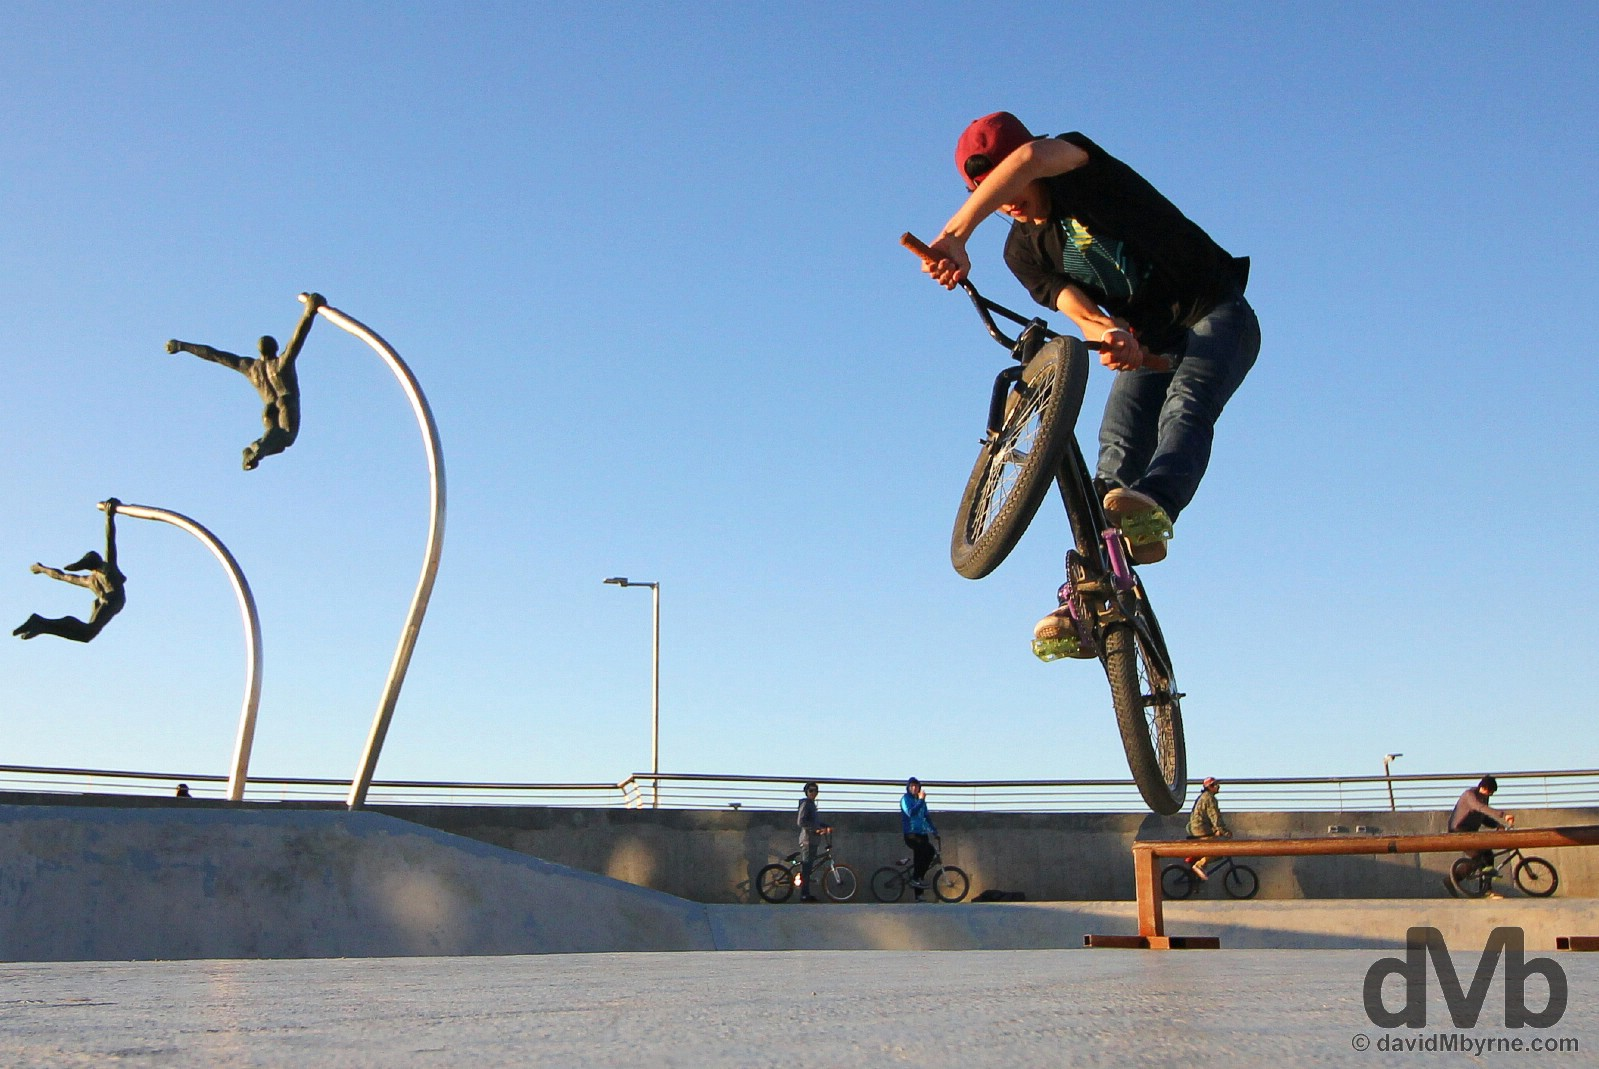 Moves in the Skate Park by Seno Ultima Esperanza in Puerto Natales, southern Patagonia, Chile. November 6, 2015.